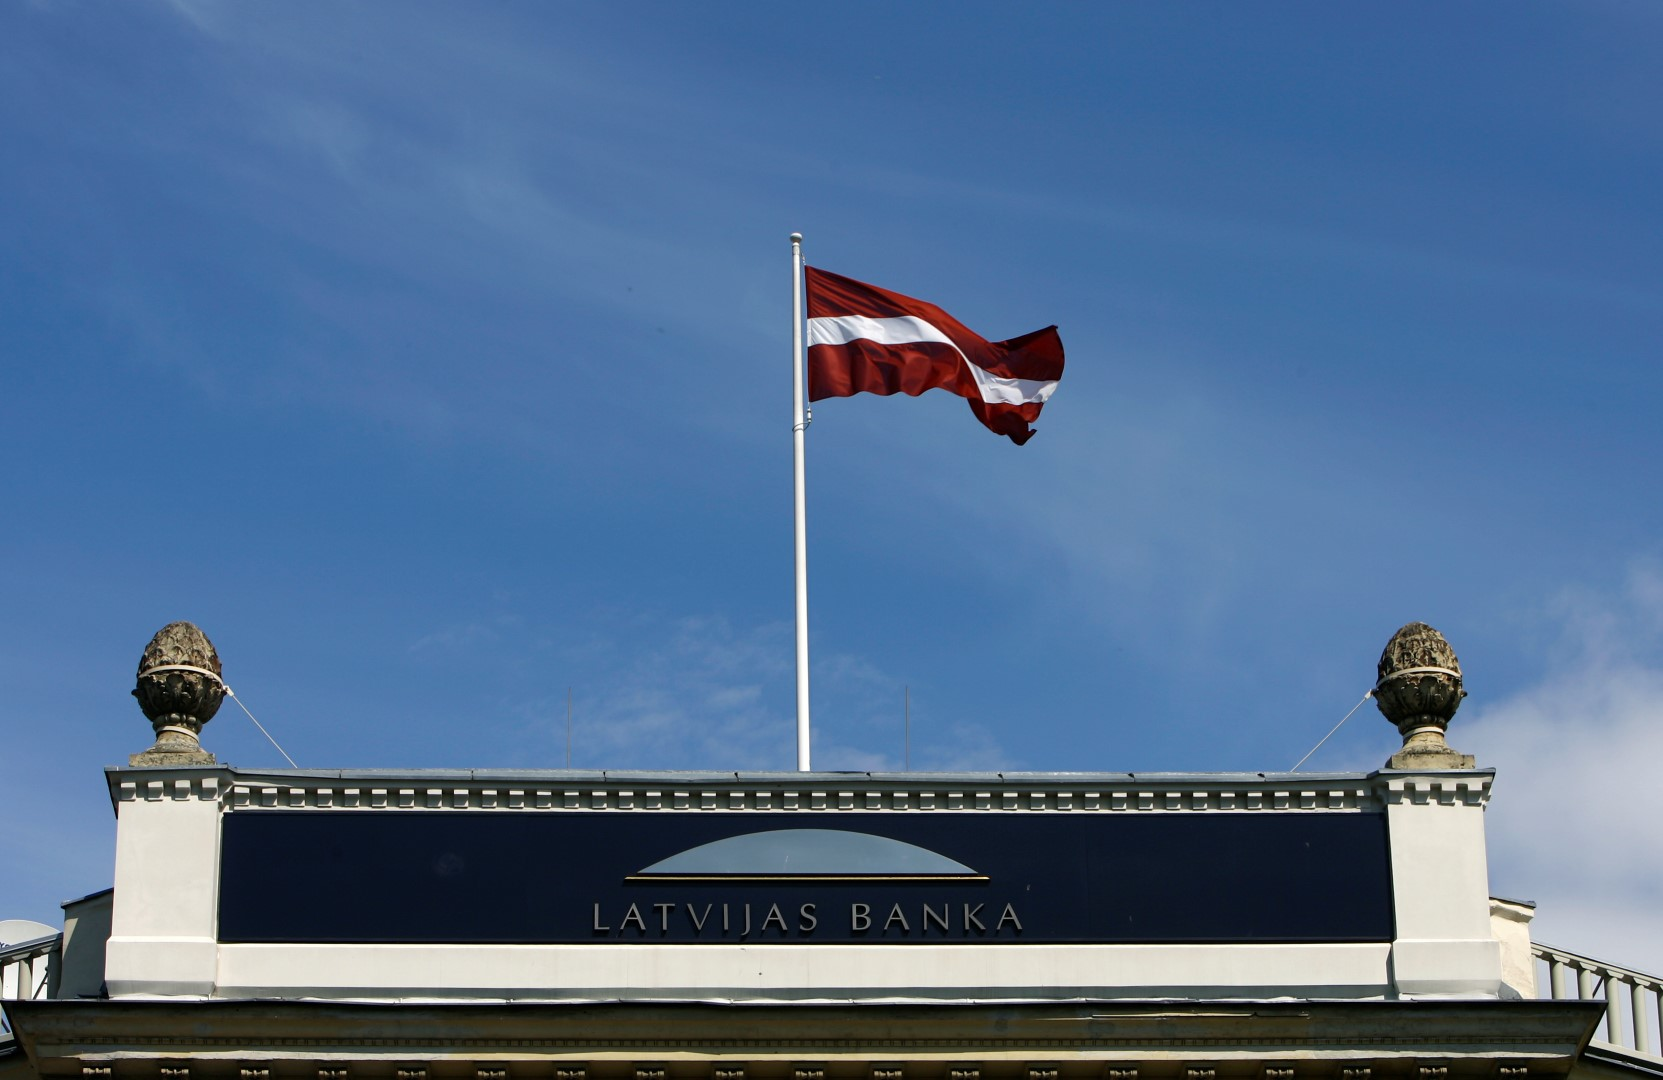 Latvia's flag waves over the Central Bank's main office building in Riga May 13, 2009. Latvia's central bank said on Wednesday it had revised its economic growth forecast to -16.5 percent from the previous forecast of -12.0 percent, and it had cut its refinancing rate to 4 percent from 5 percent. REUTERS/Ints Kalnins (LATVIA SOCIETY POLITICS BUSINESS) - GM1E55D1MDH01